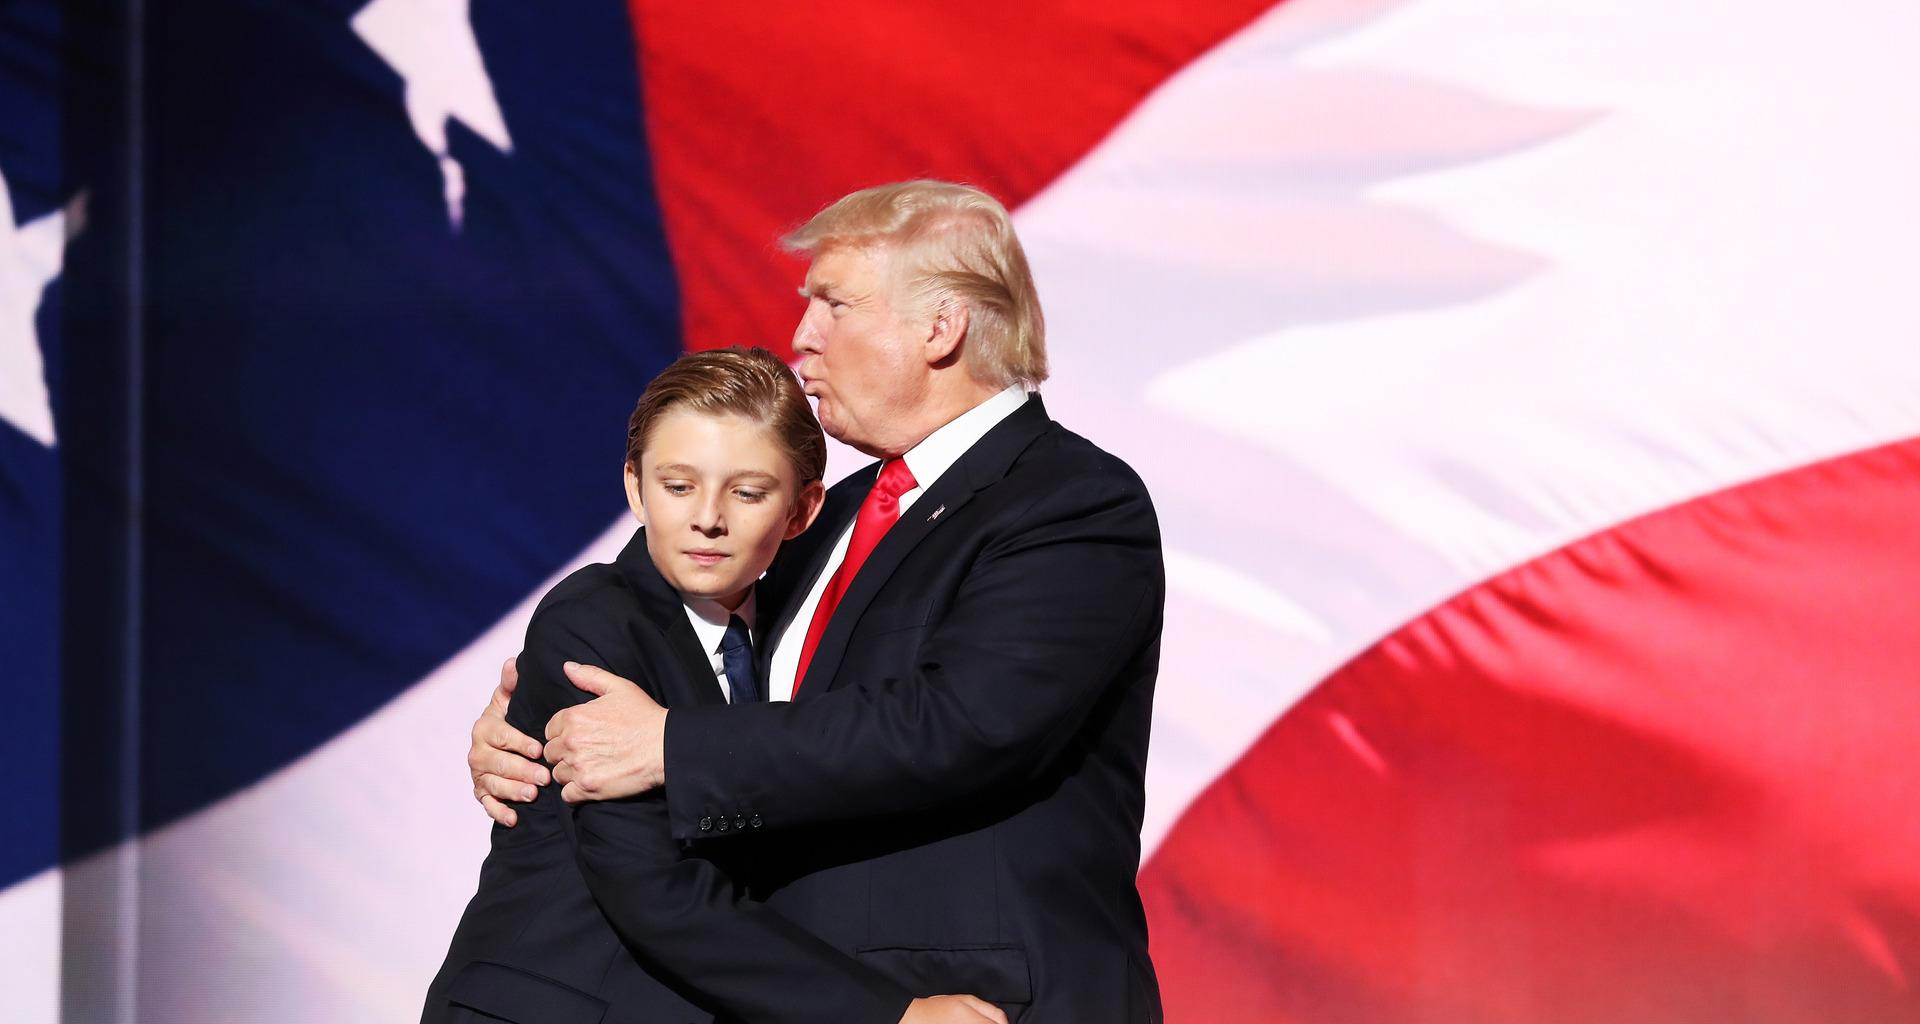 Donald Trump Trolled Online After Seemingly Forgetting Barron, 13, Is His Son In Viral Video!